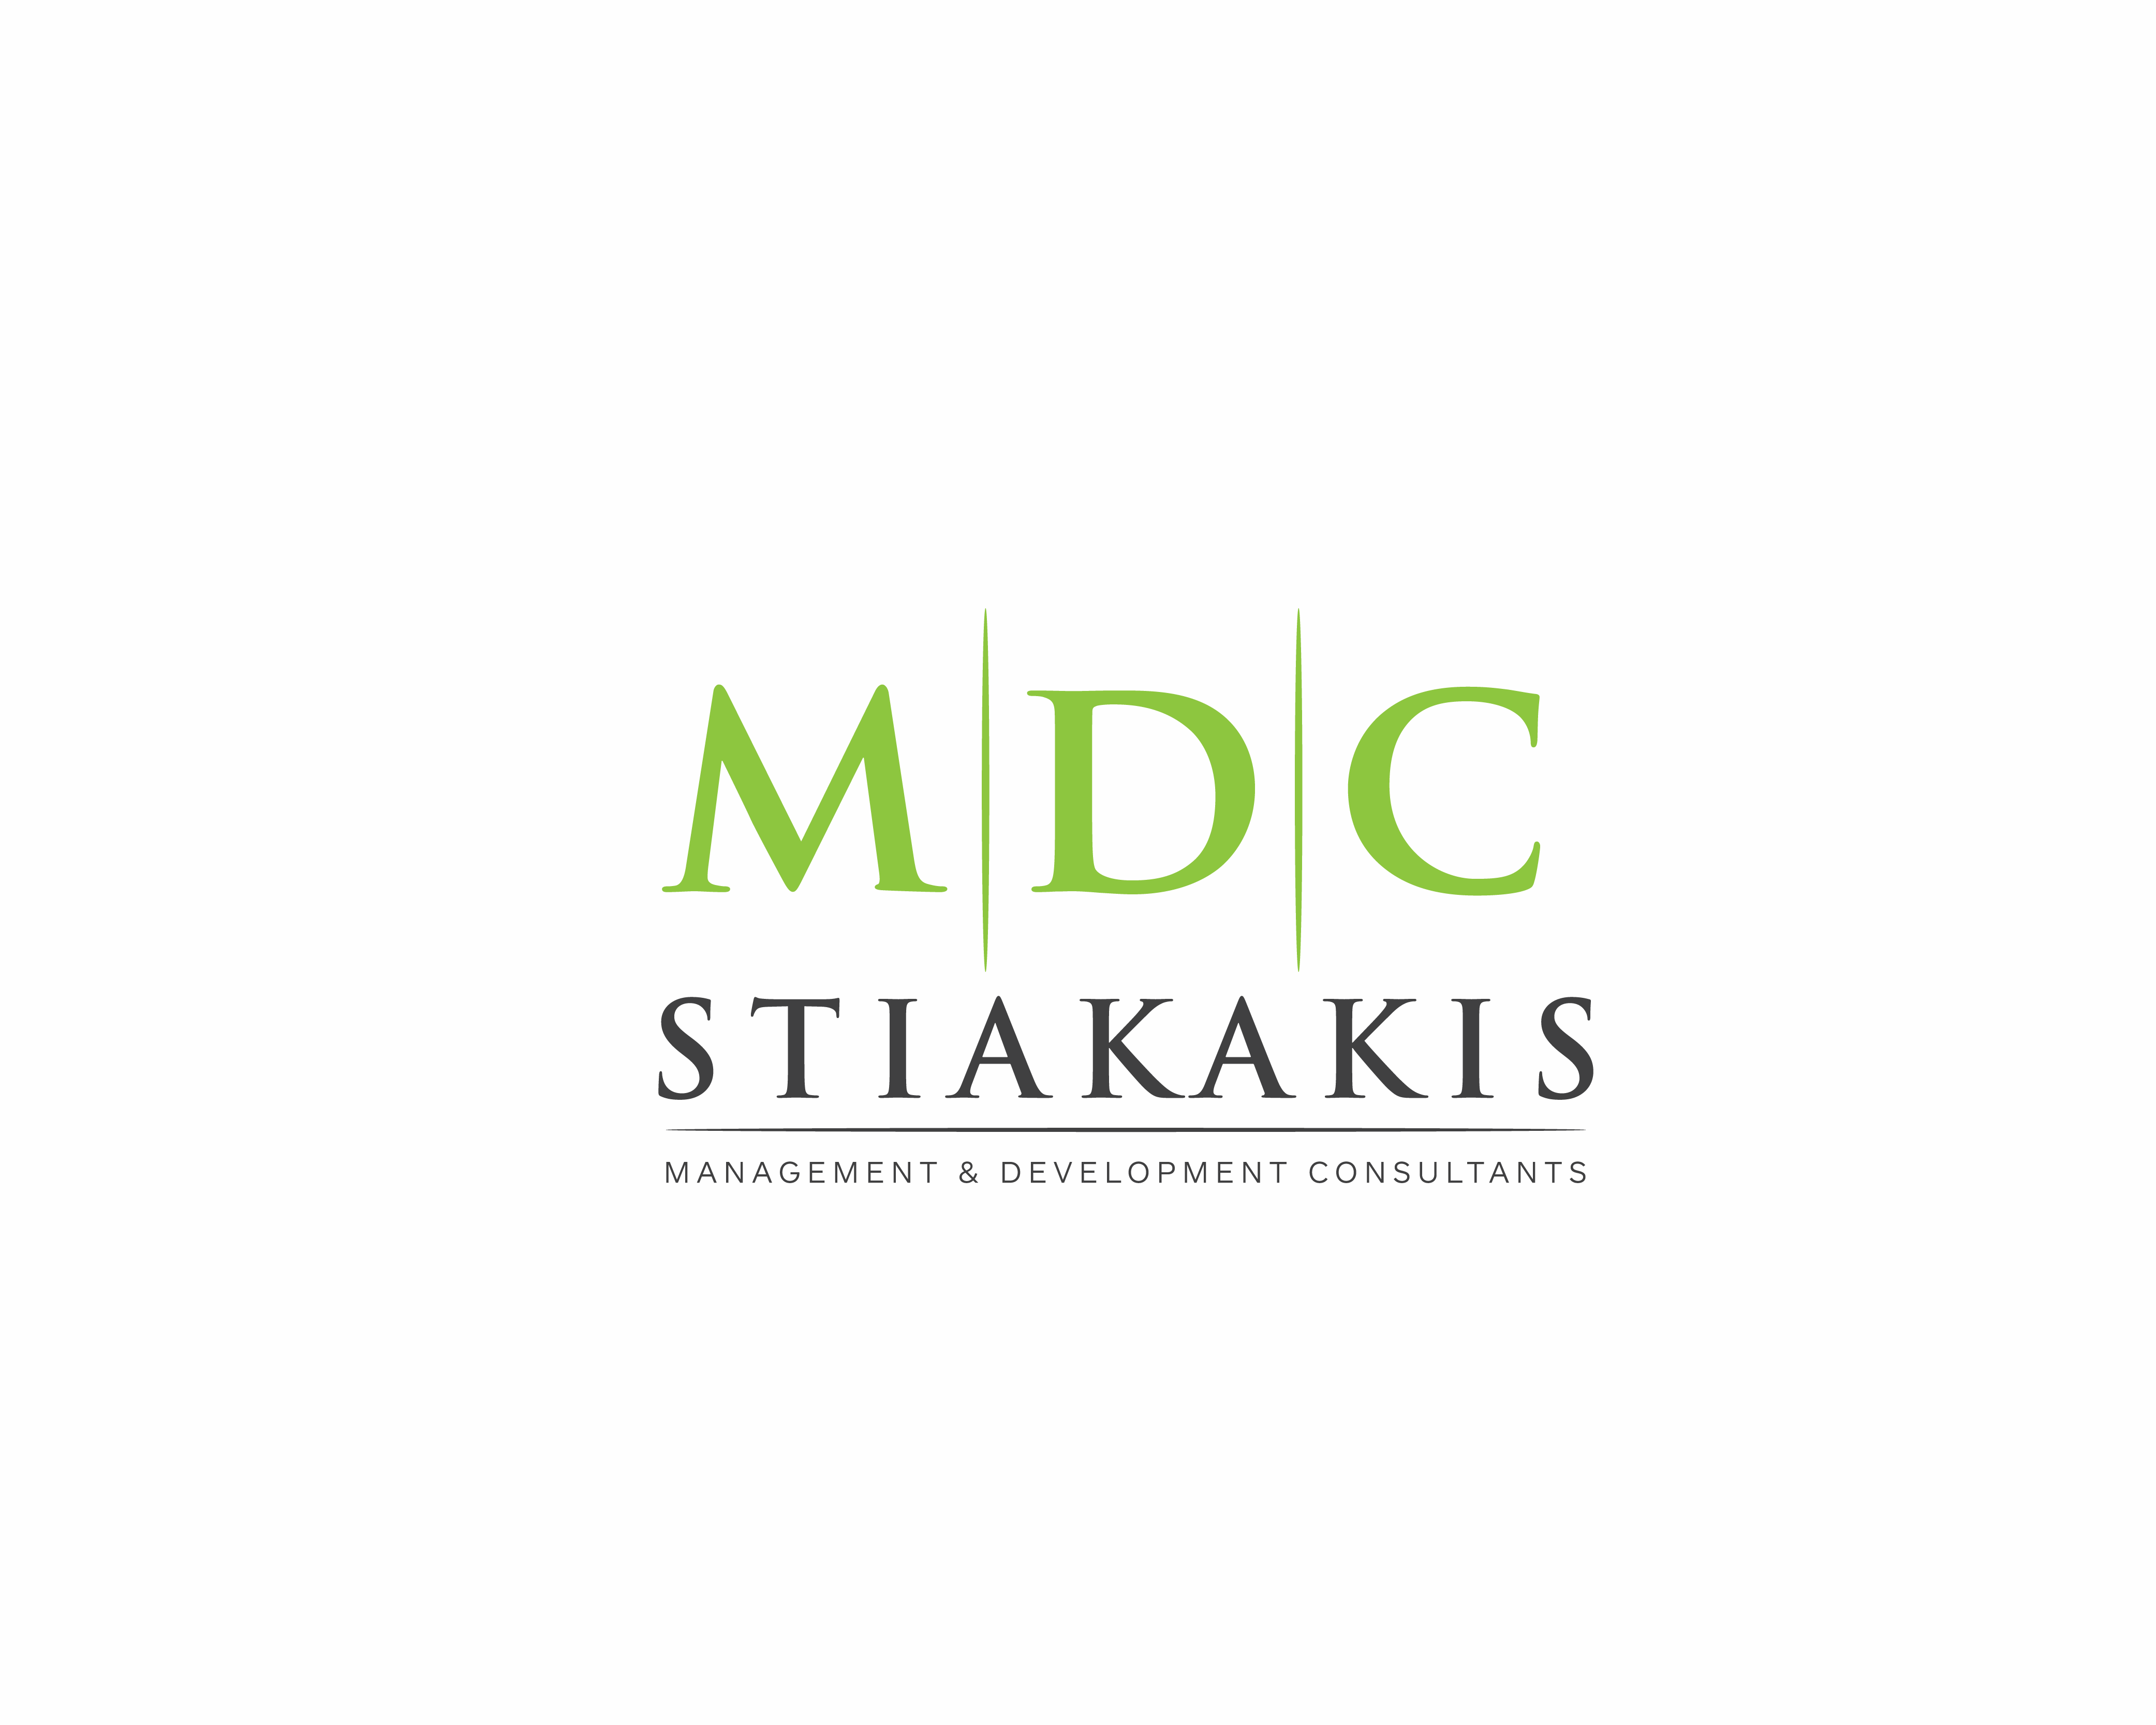 Logo Design by roc - Entry No. 20 in the Logo Design Contest Unique Logo Design Wanted for MDC STIAKAKIS.